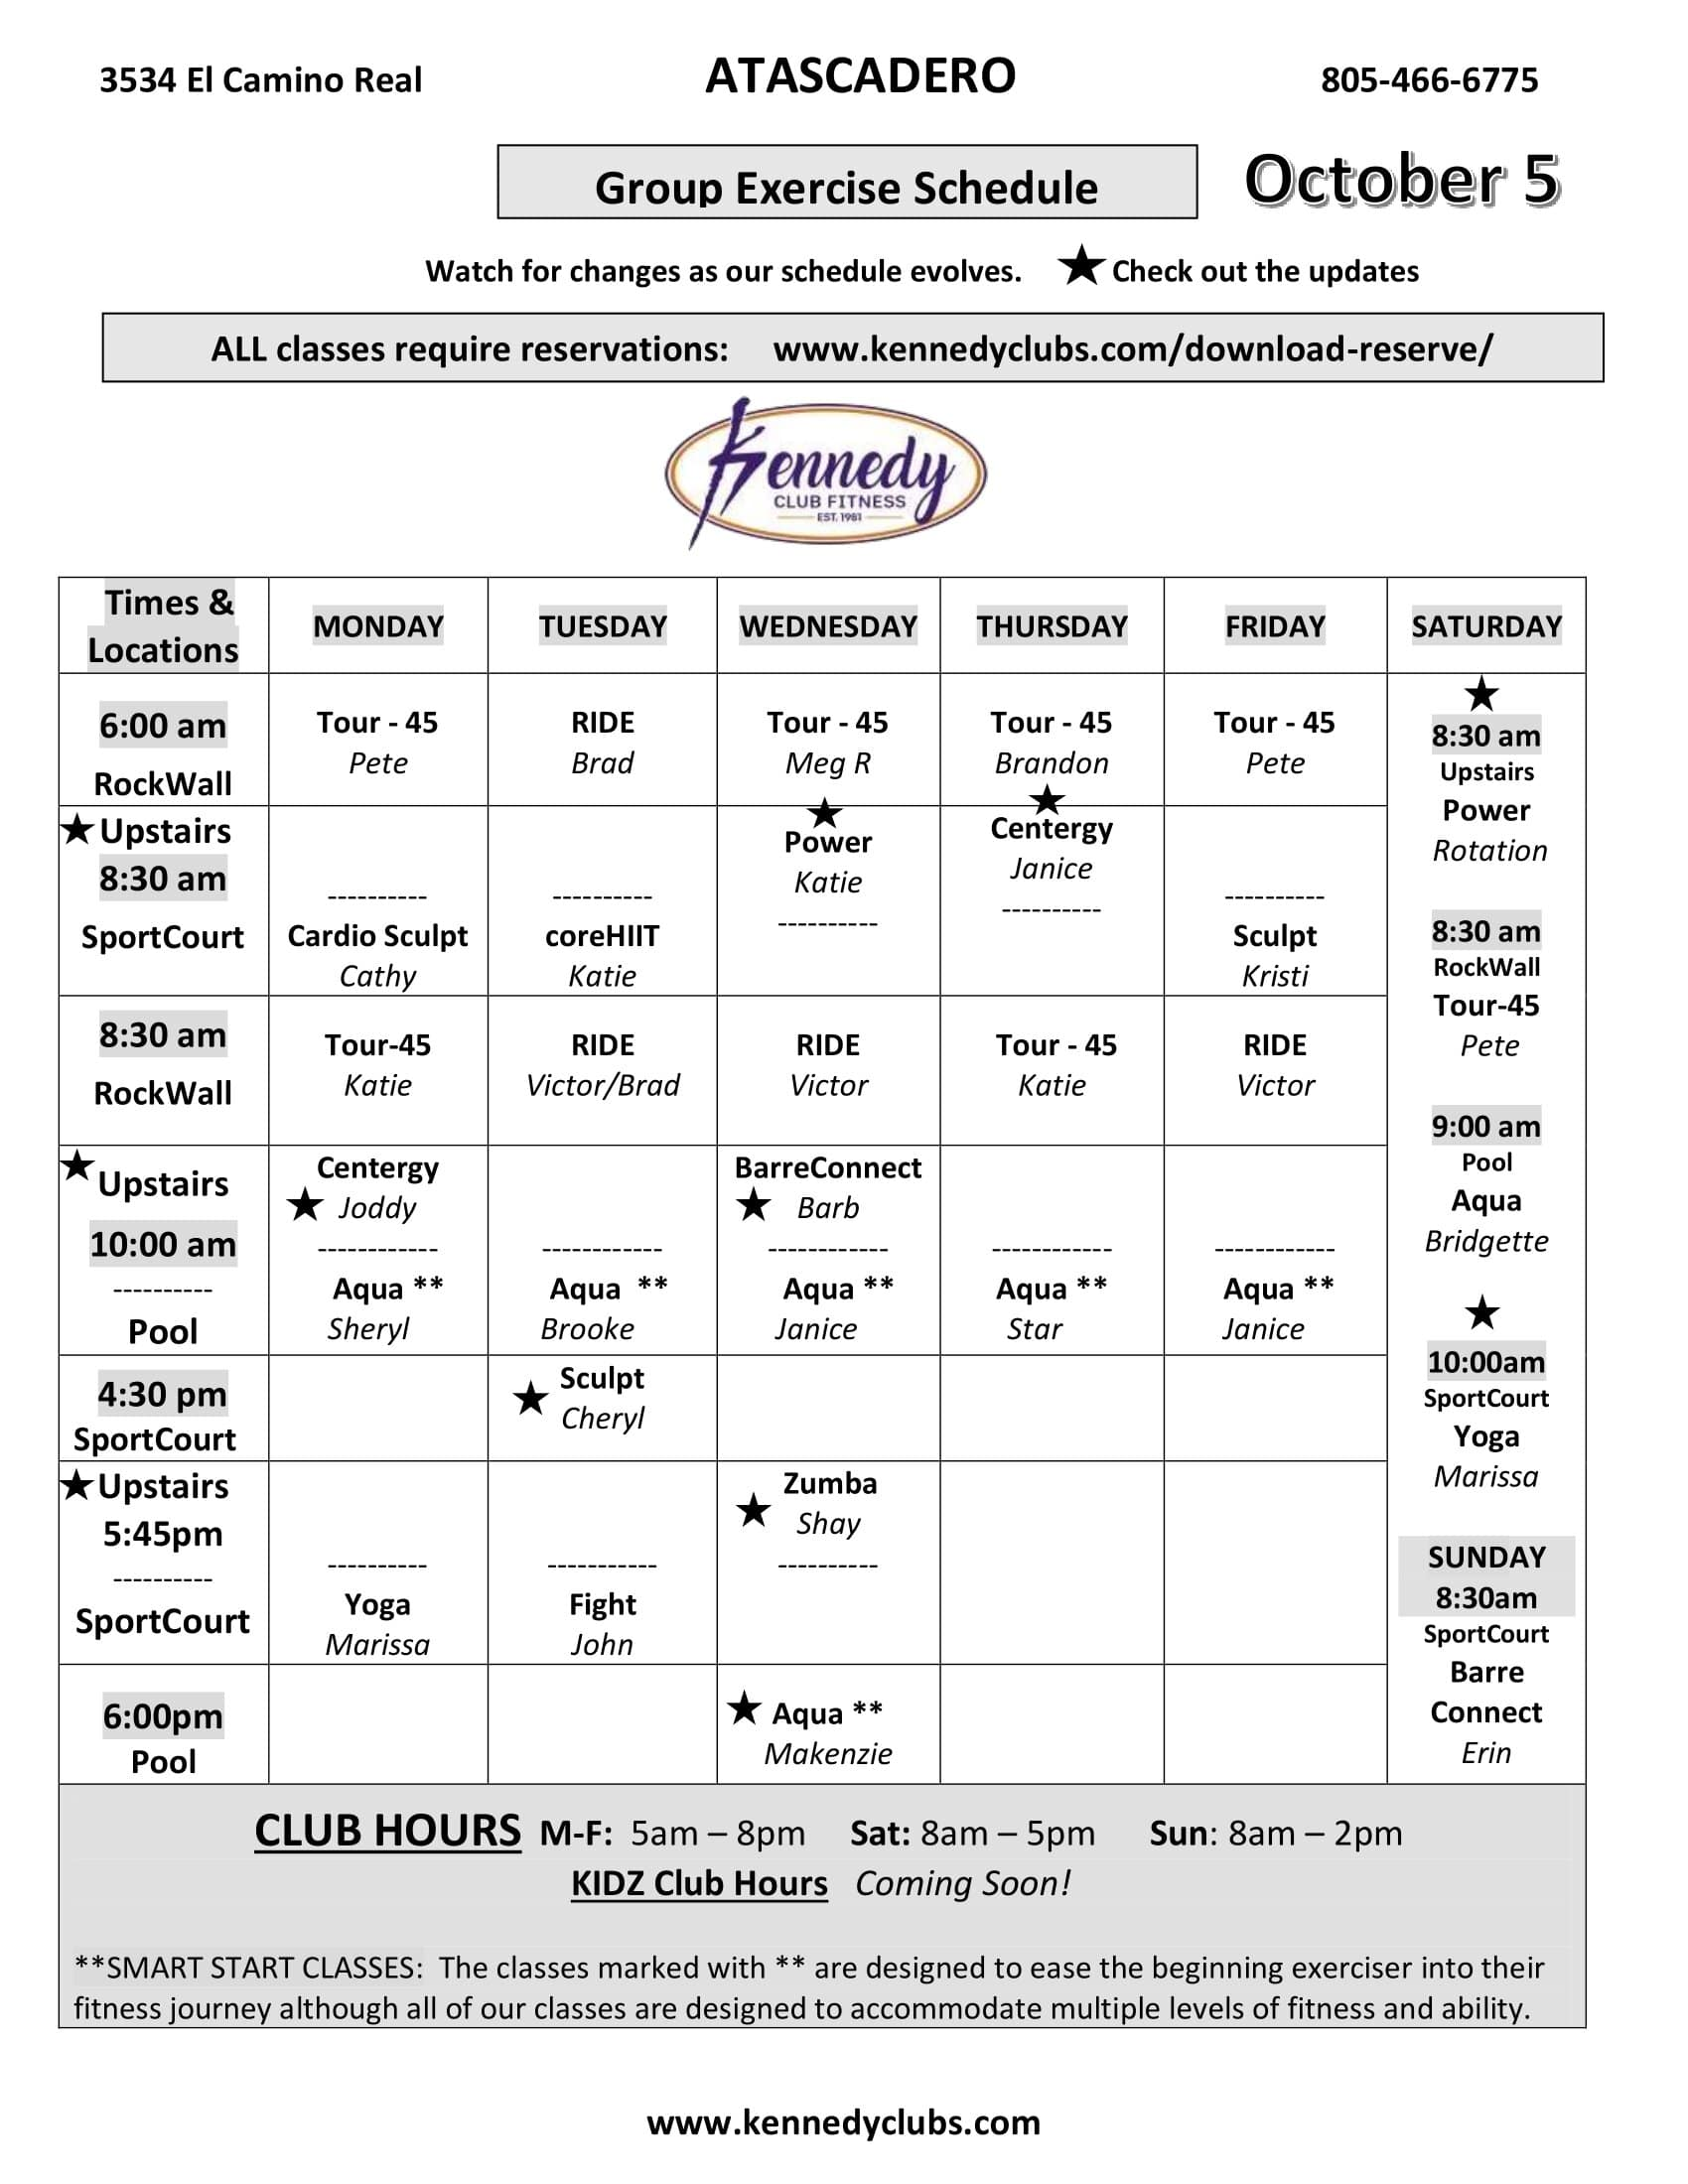 Kennedy Club Fitness  Atascadero Group Exercise Schedule 10 05 2020